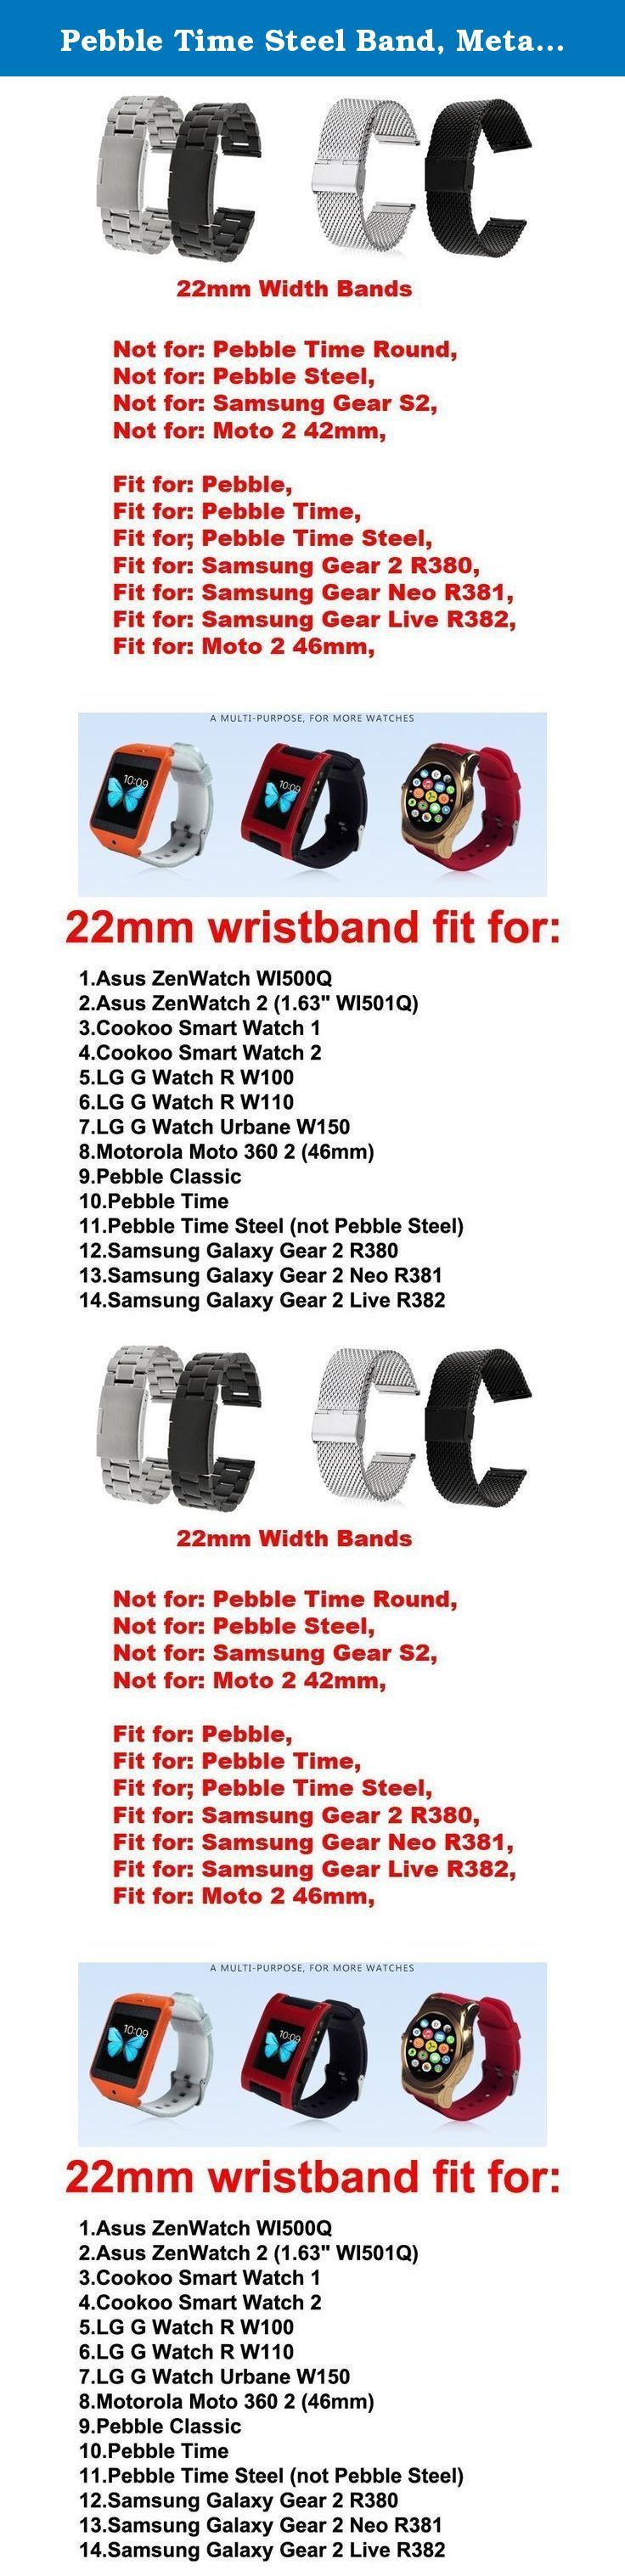 Pebble Time Steel Band, Metal, Replacement Stainless Steel Watch Strap for Pebble Time Steel (NOT Pebble Steel) Smart Watch /No Watch - 5zhuSilver. Metal Watchband/ Stainless Steel Strap fits for (Pebble Time Steel) Smart Watch, Please NOTE: Not Pebble Steel With Prefect workmanship, fashion design, comfortable feeling, stylish look, giving you noble wearing experience, easy to use, come with a set of tools Easy to install and remove; Width: 22mm; Length adjustable length; Best metal…